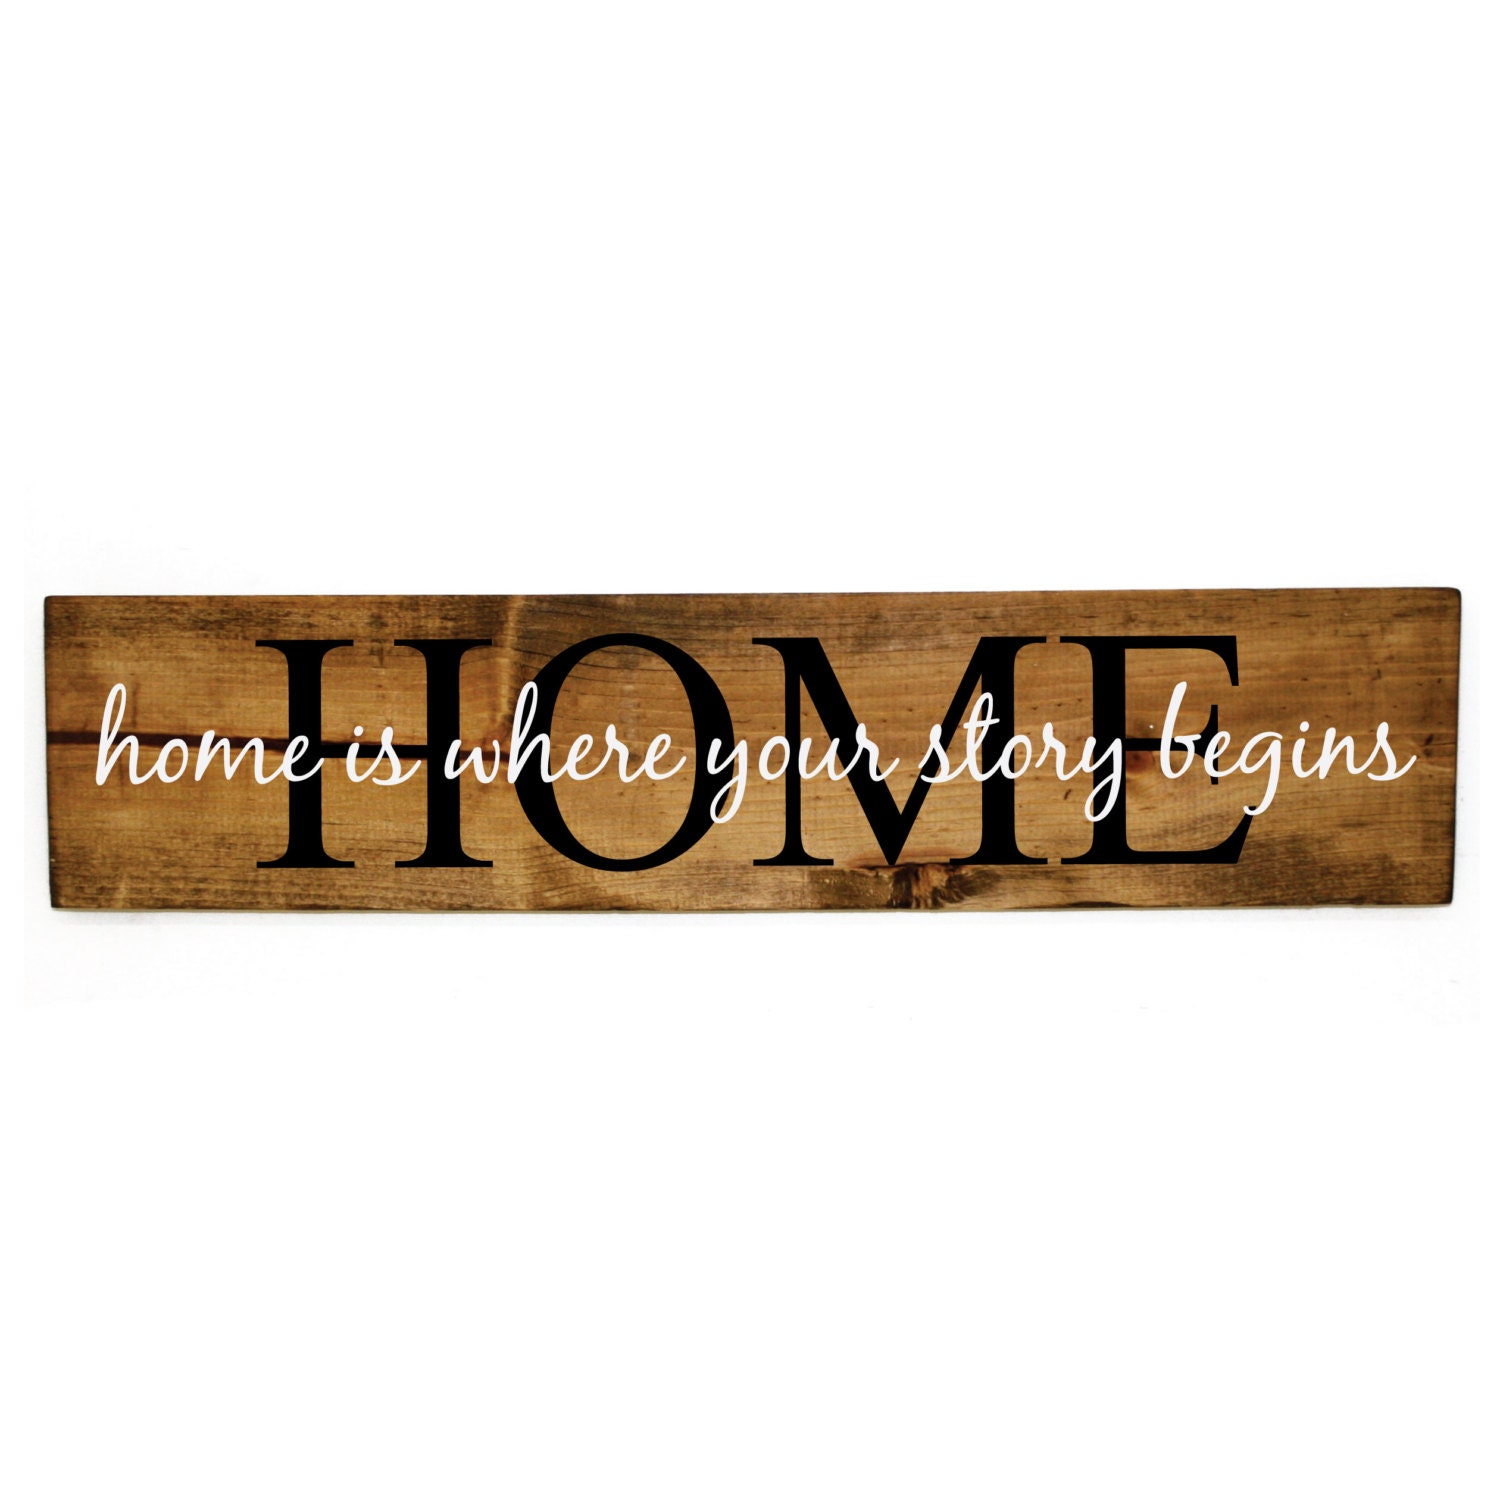 Home is where your story begins wood sign - Wood home decor, Rustic ...